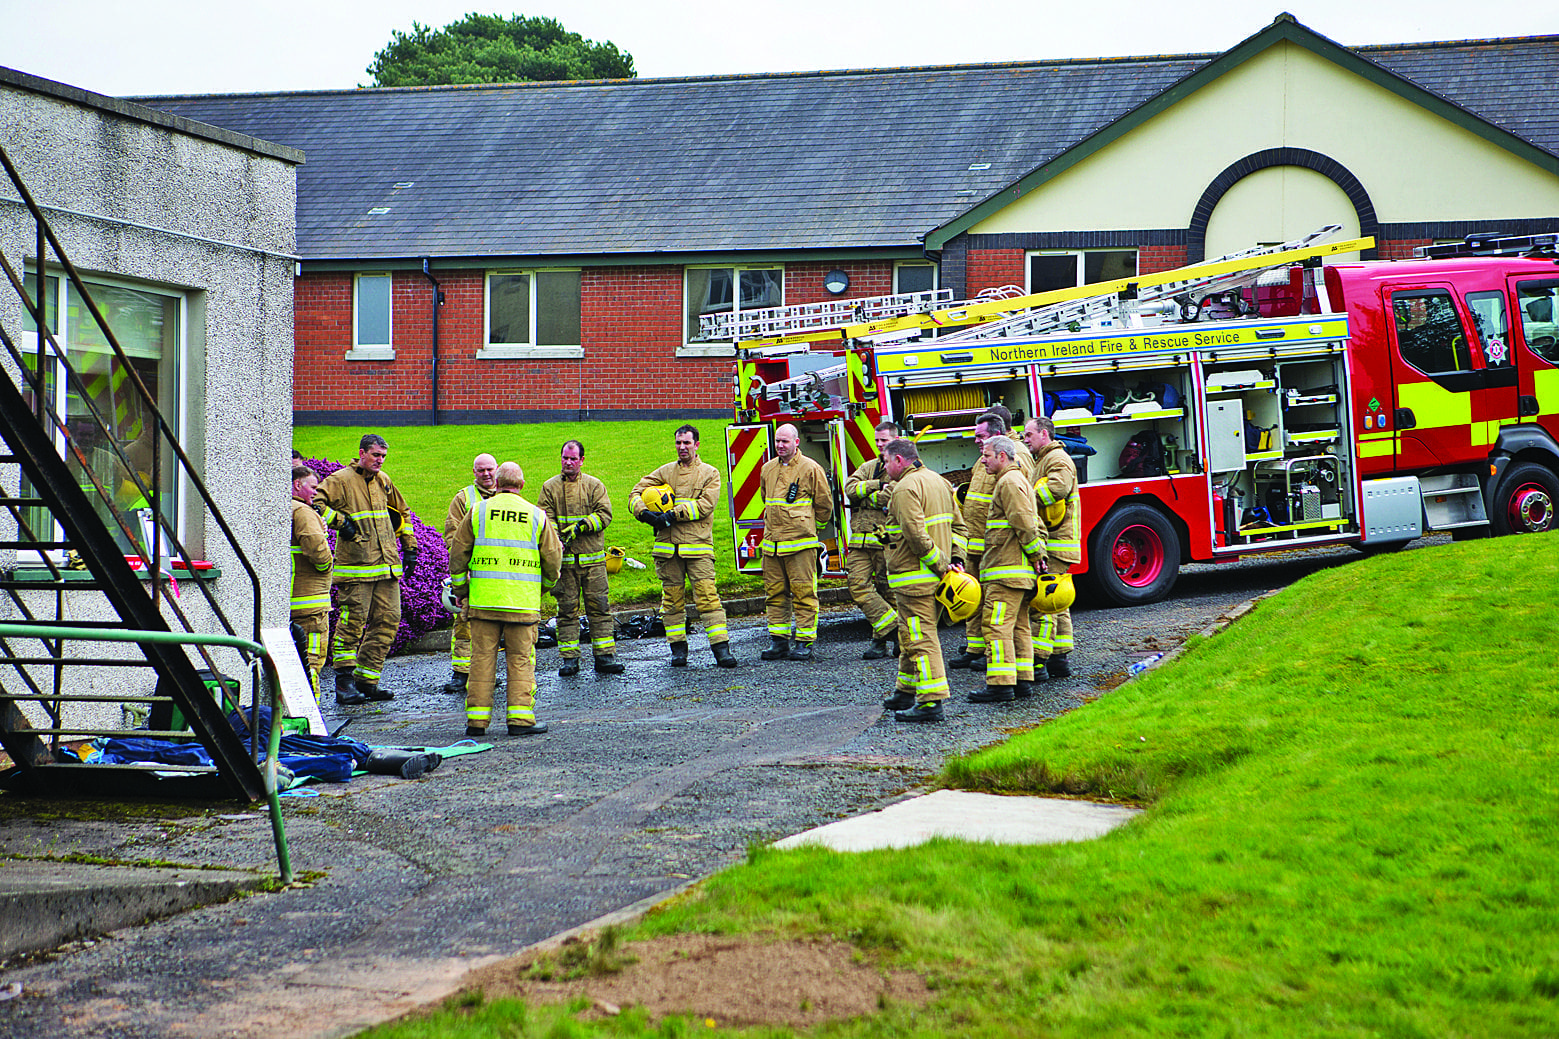 Firefighters turn up the heat for Bangor training exercise